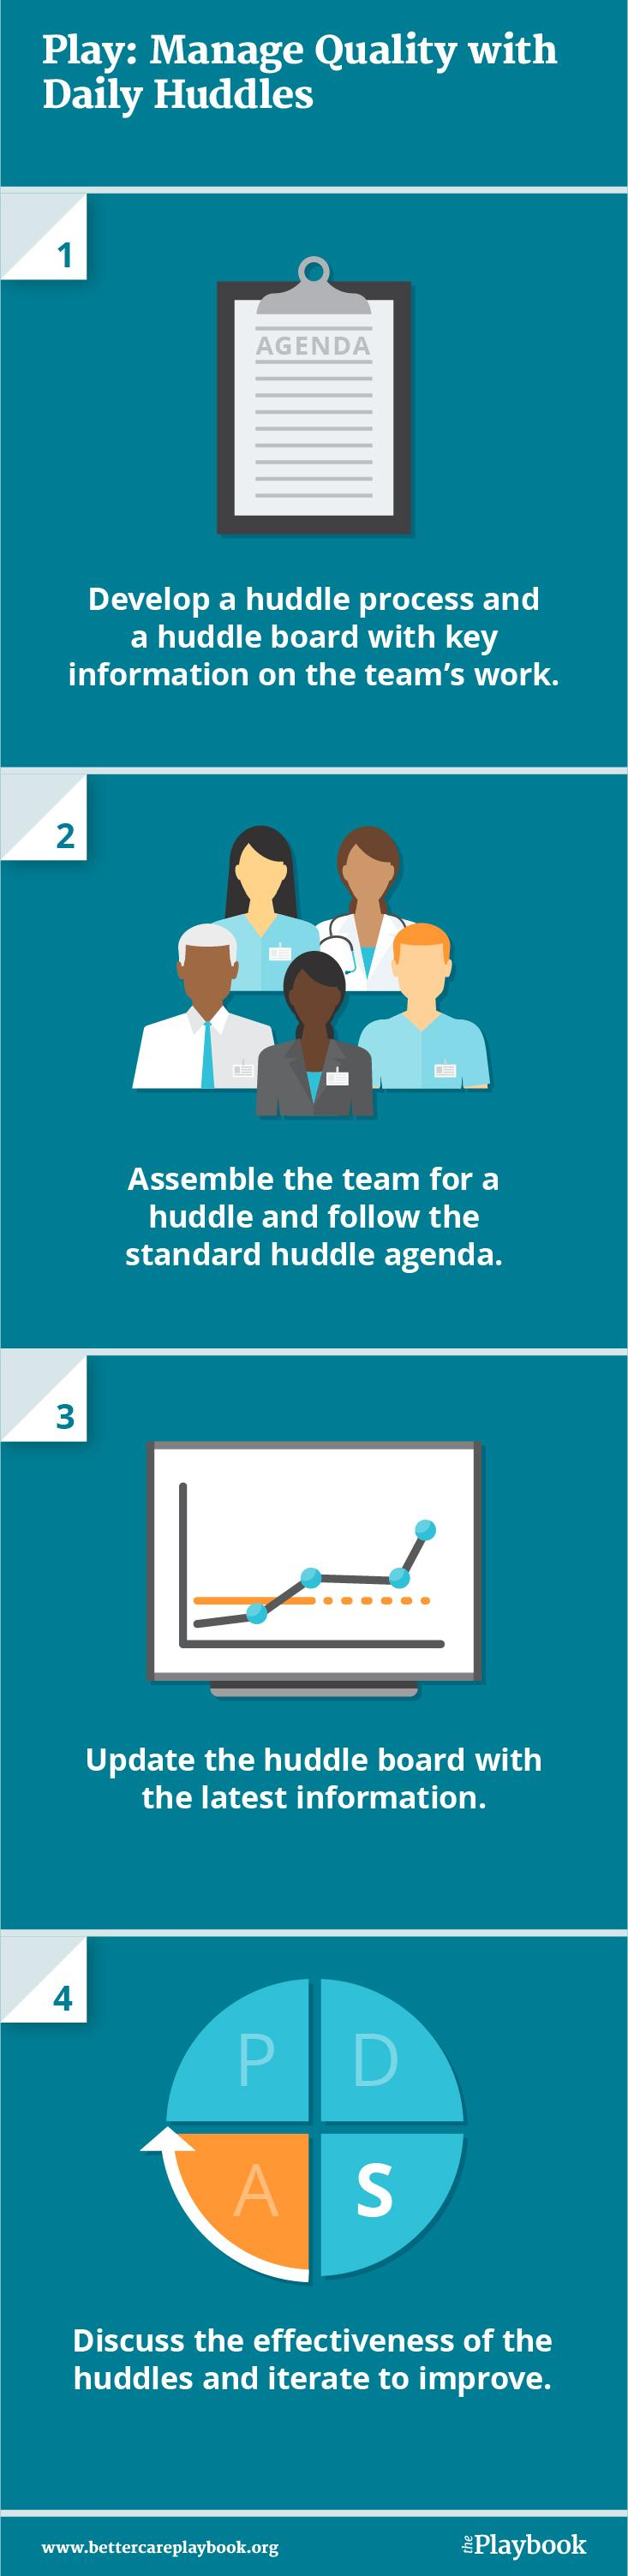 Play Manage Quality With Daily Huddles Playbook